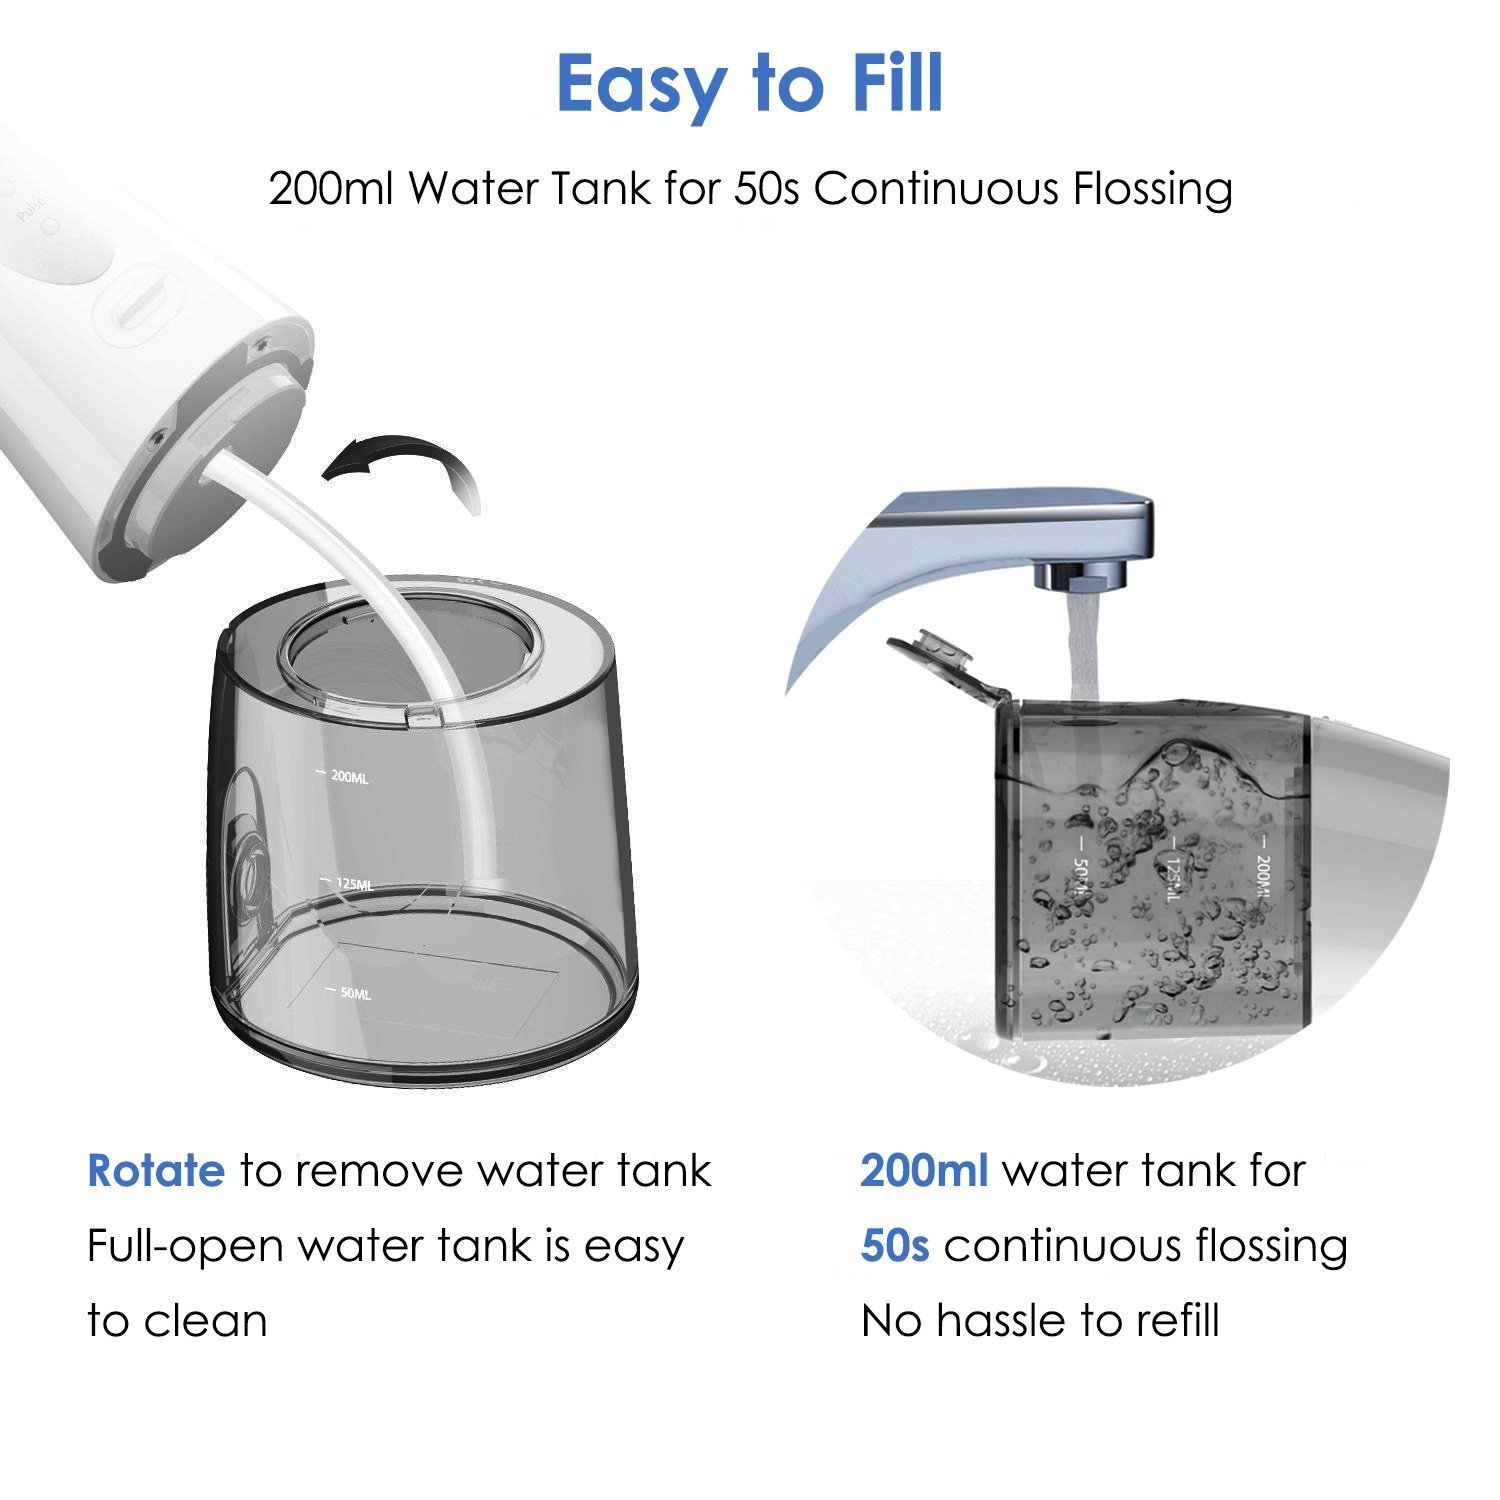 Cordless Water Flosser Teeth Cleaner - Zerhunt High Plus Rechargable Portable Oral Irrigator for Travel, IPX7 Waterproof Dental Water Jet for Shower with 3 Interchangeable Jet Tips by Zerhunt (Image #5)